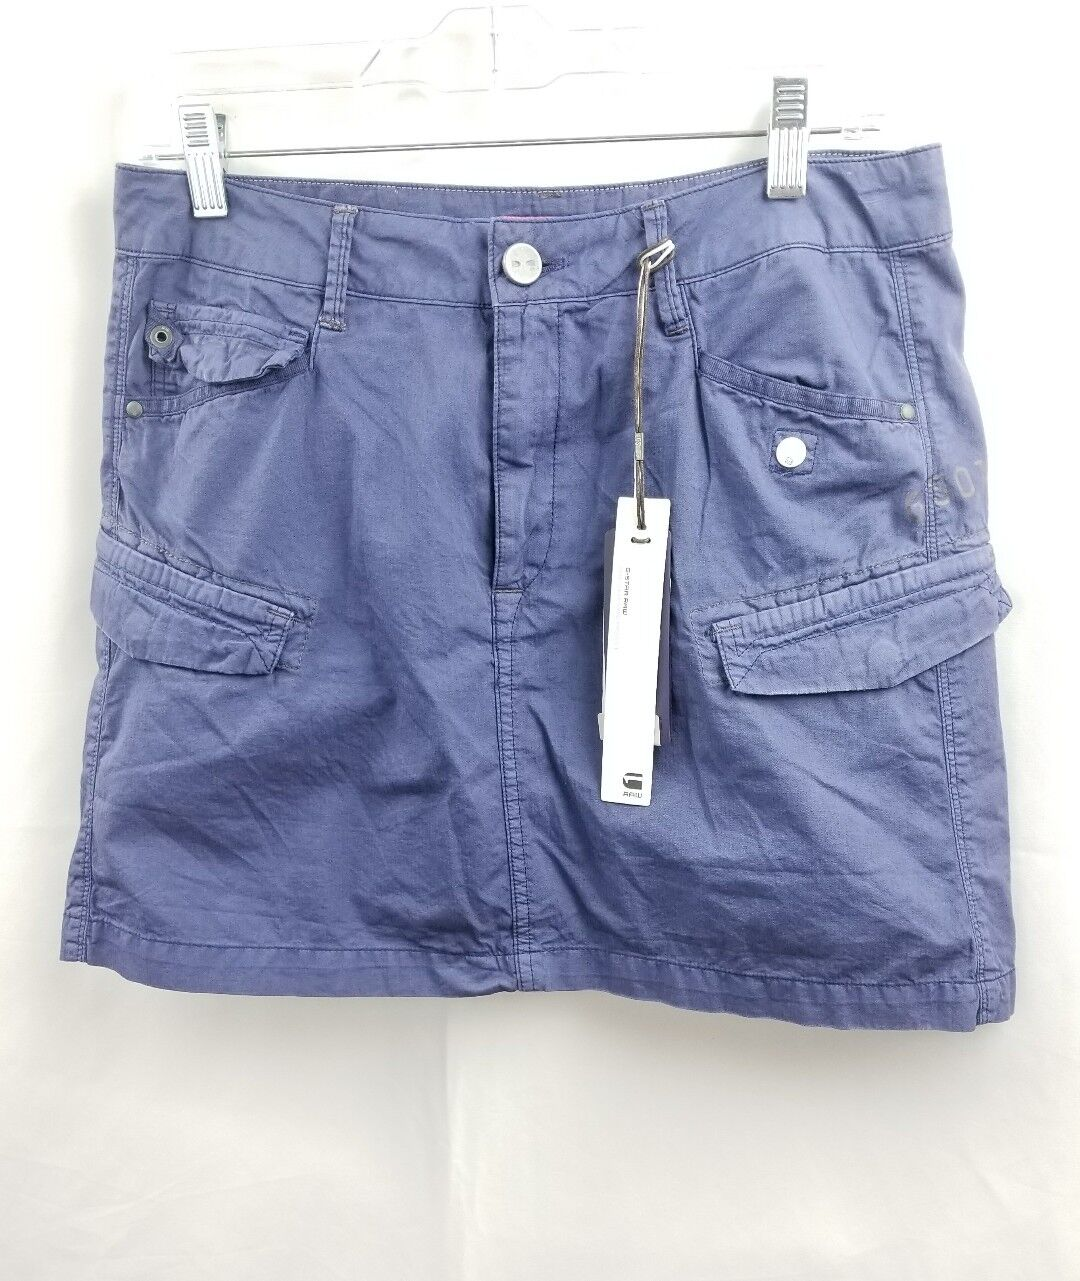 G Star Raw size 27 denim women  mini skirt with stretch panels bluee NWT